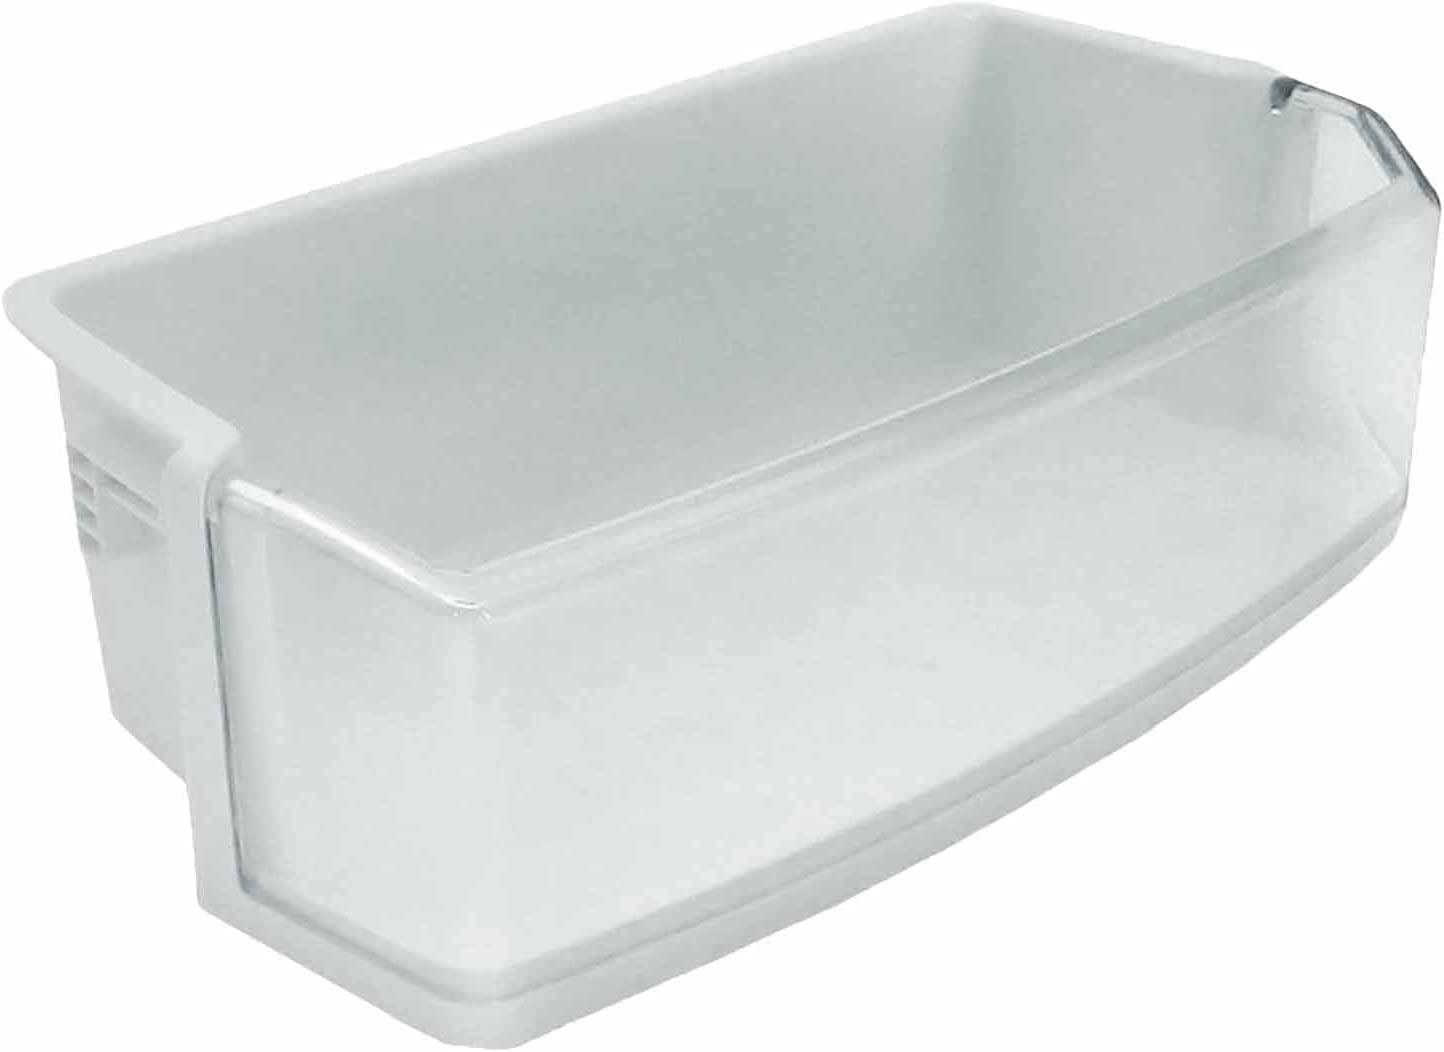 AAP73631602 Door Shelf by PartsBroz with Refrige - Gifts quality assurance Compatible LG